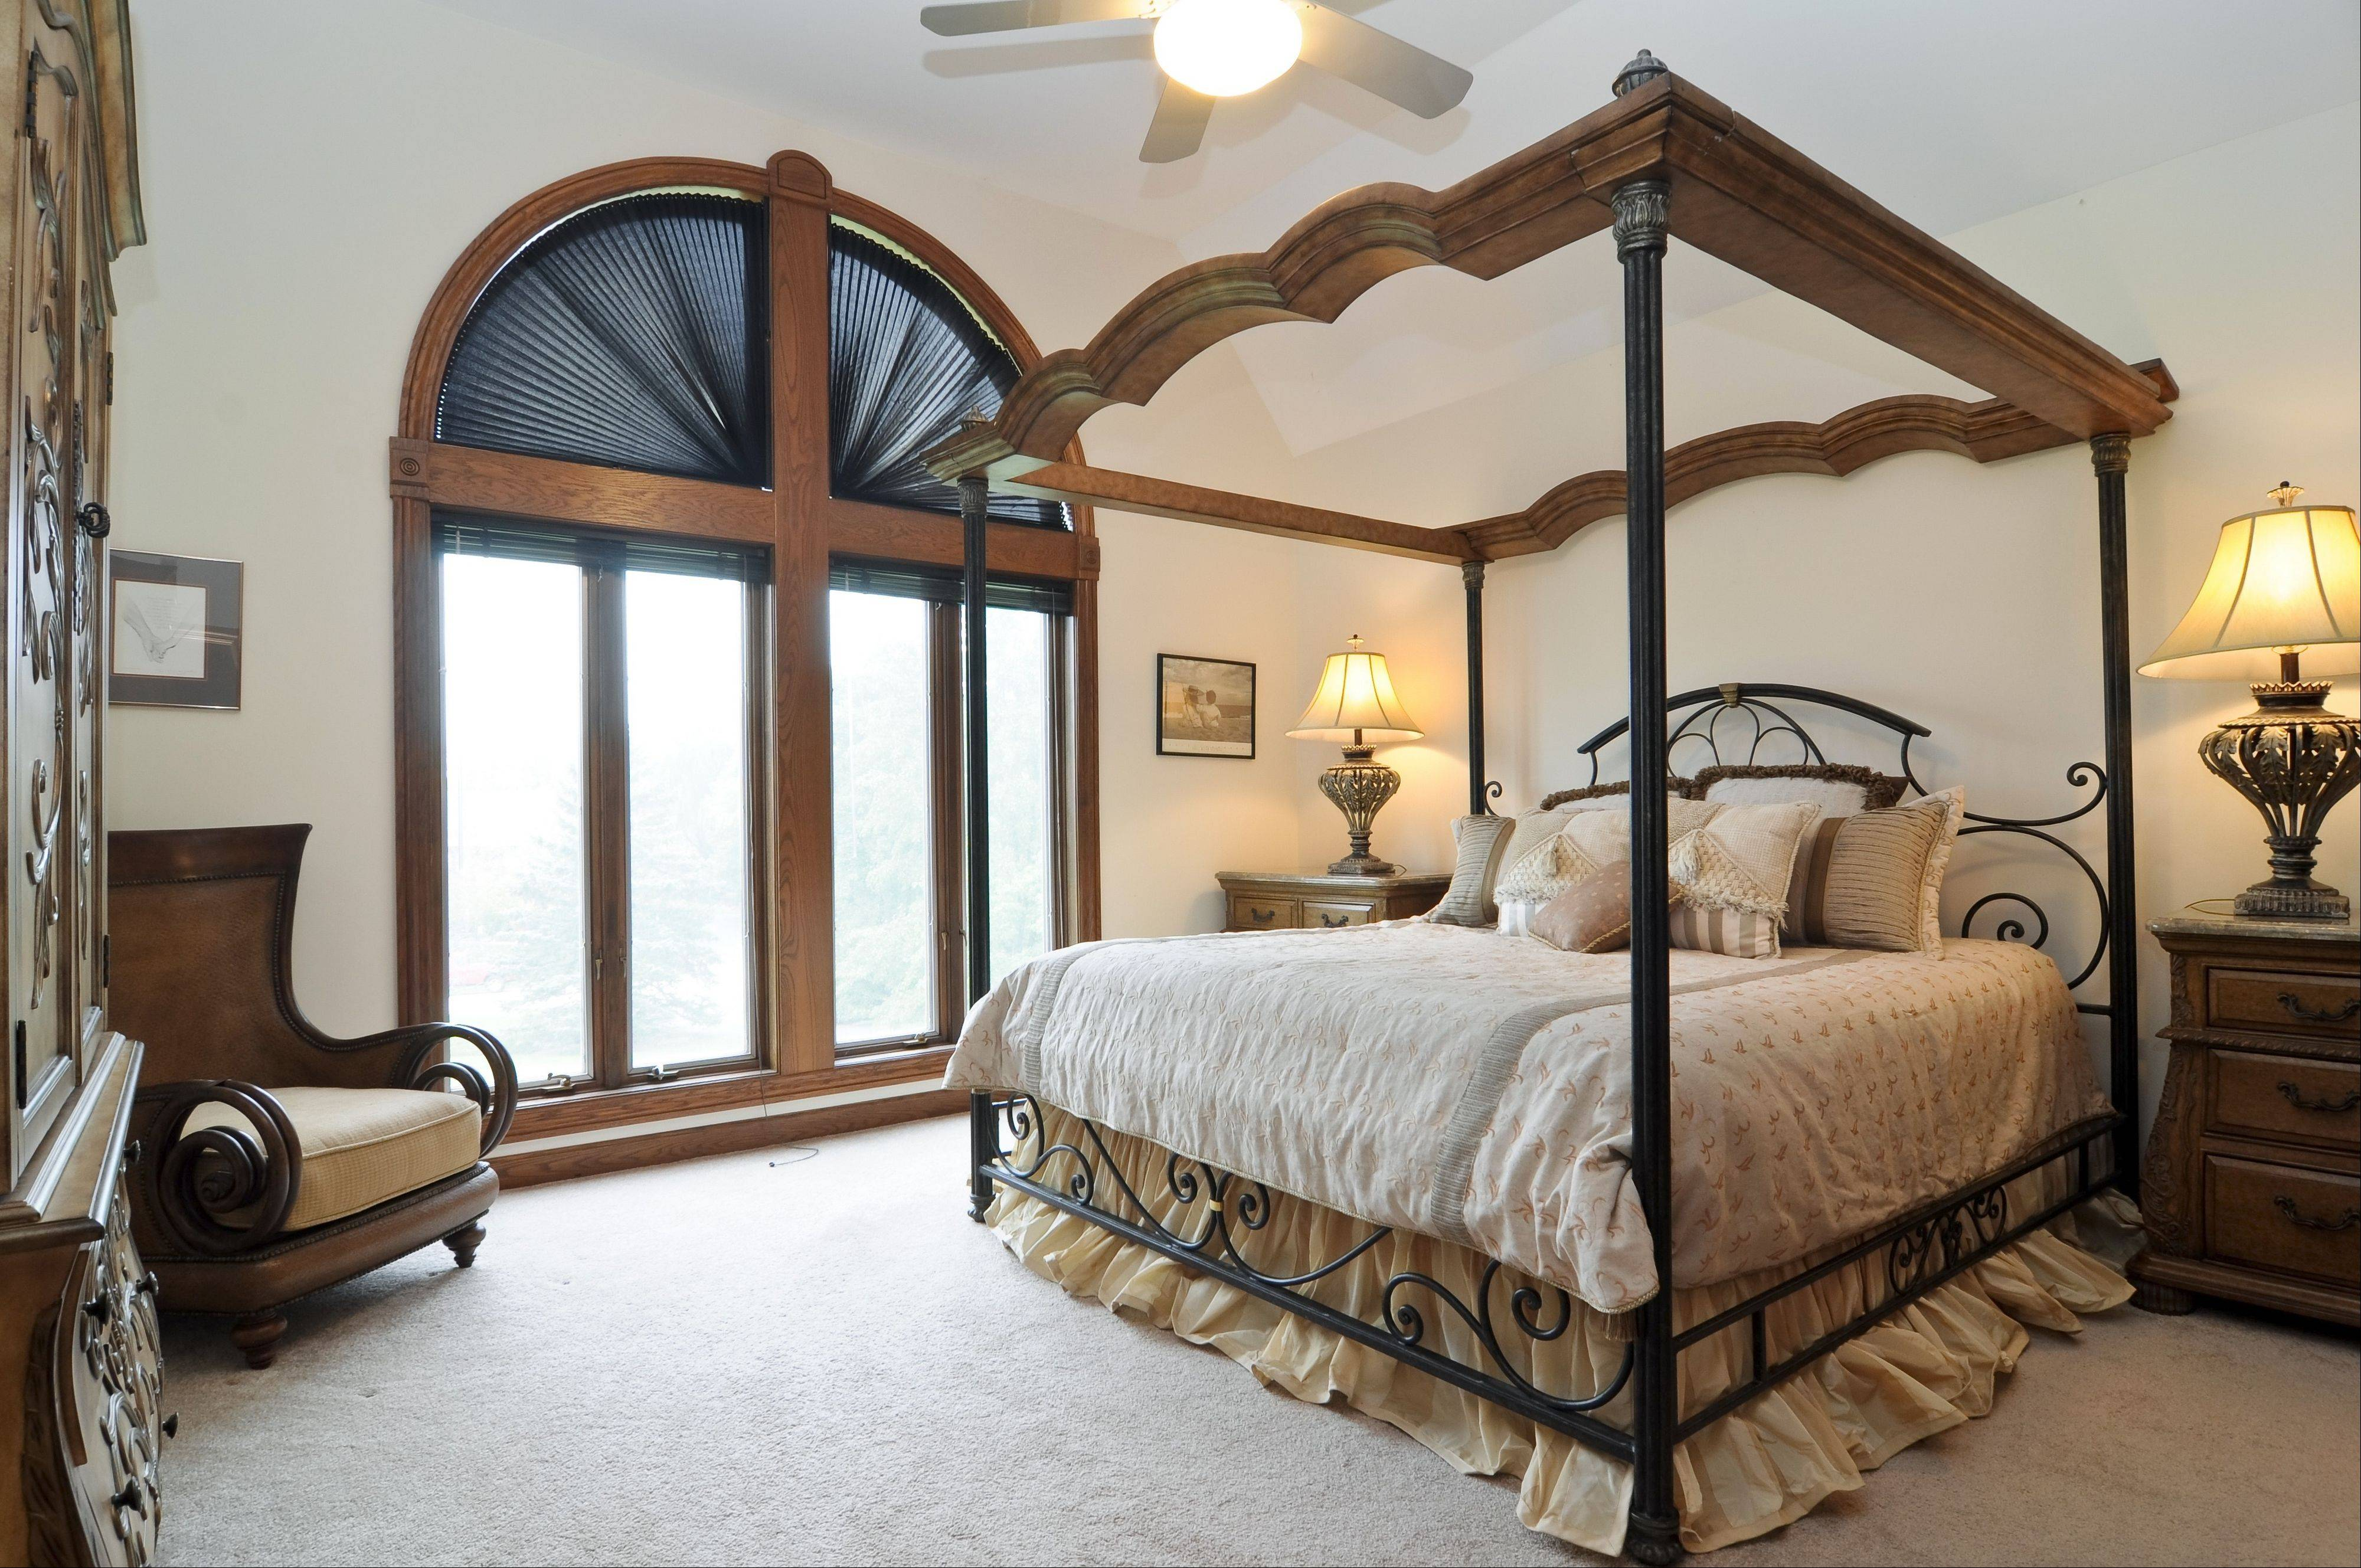 Views of the wooded area can be seen out of the master suite windows.